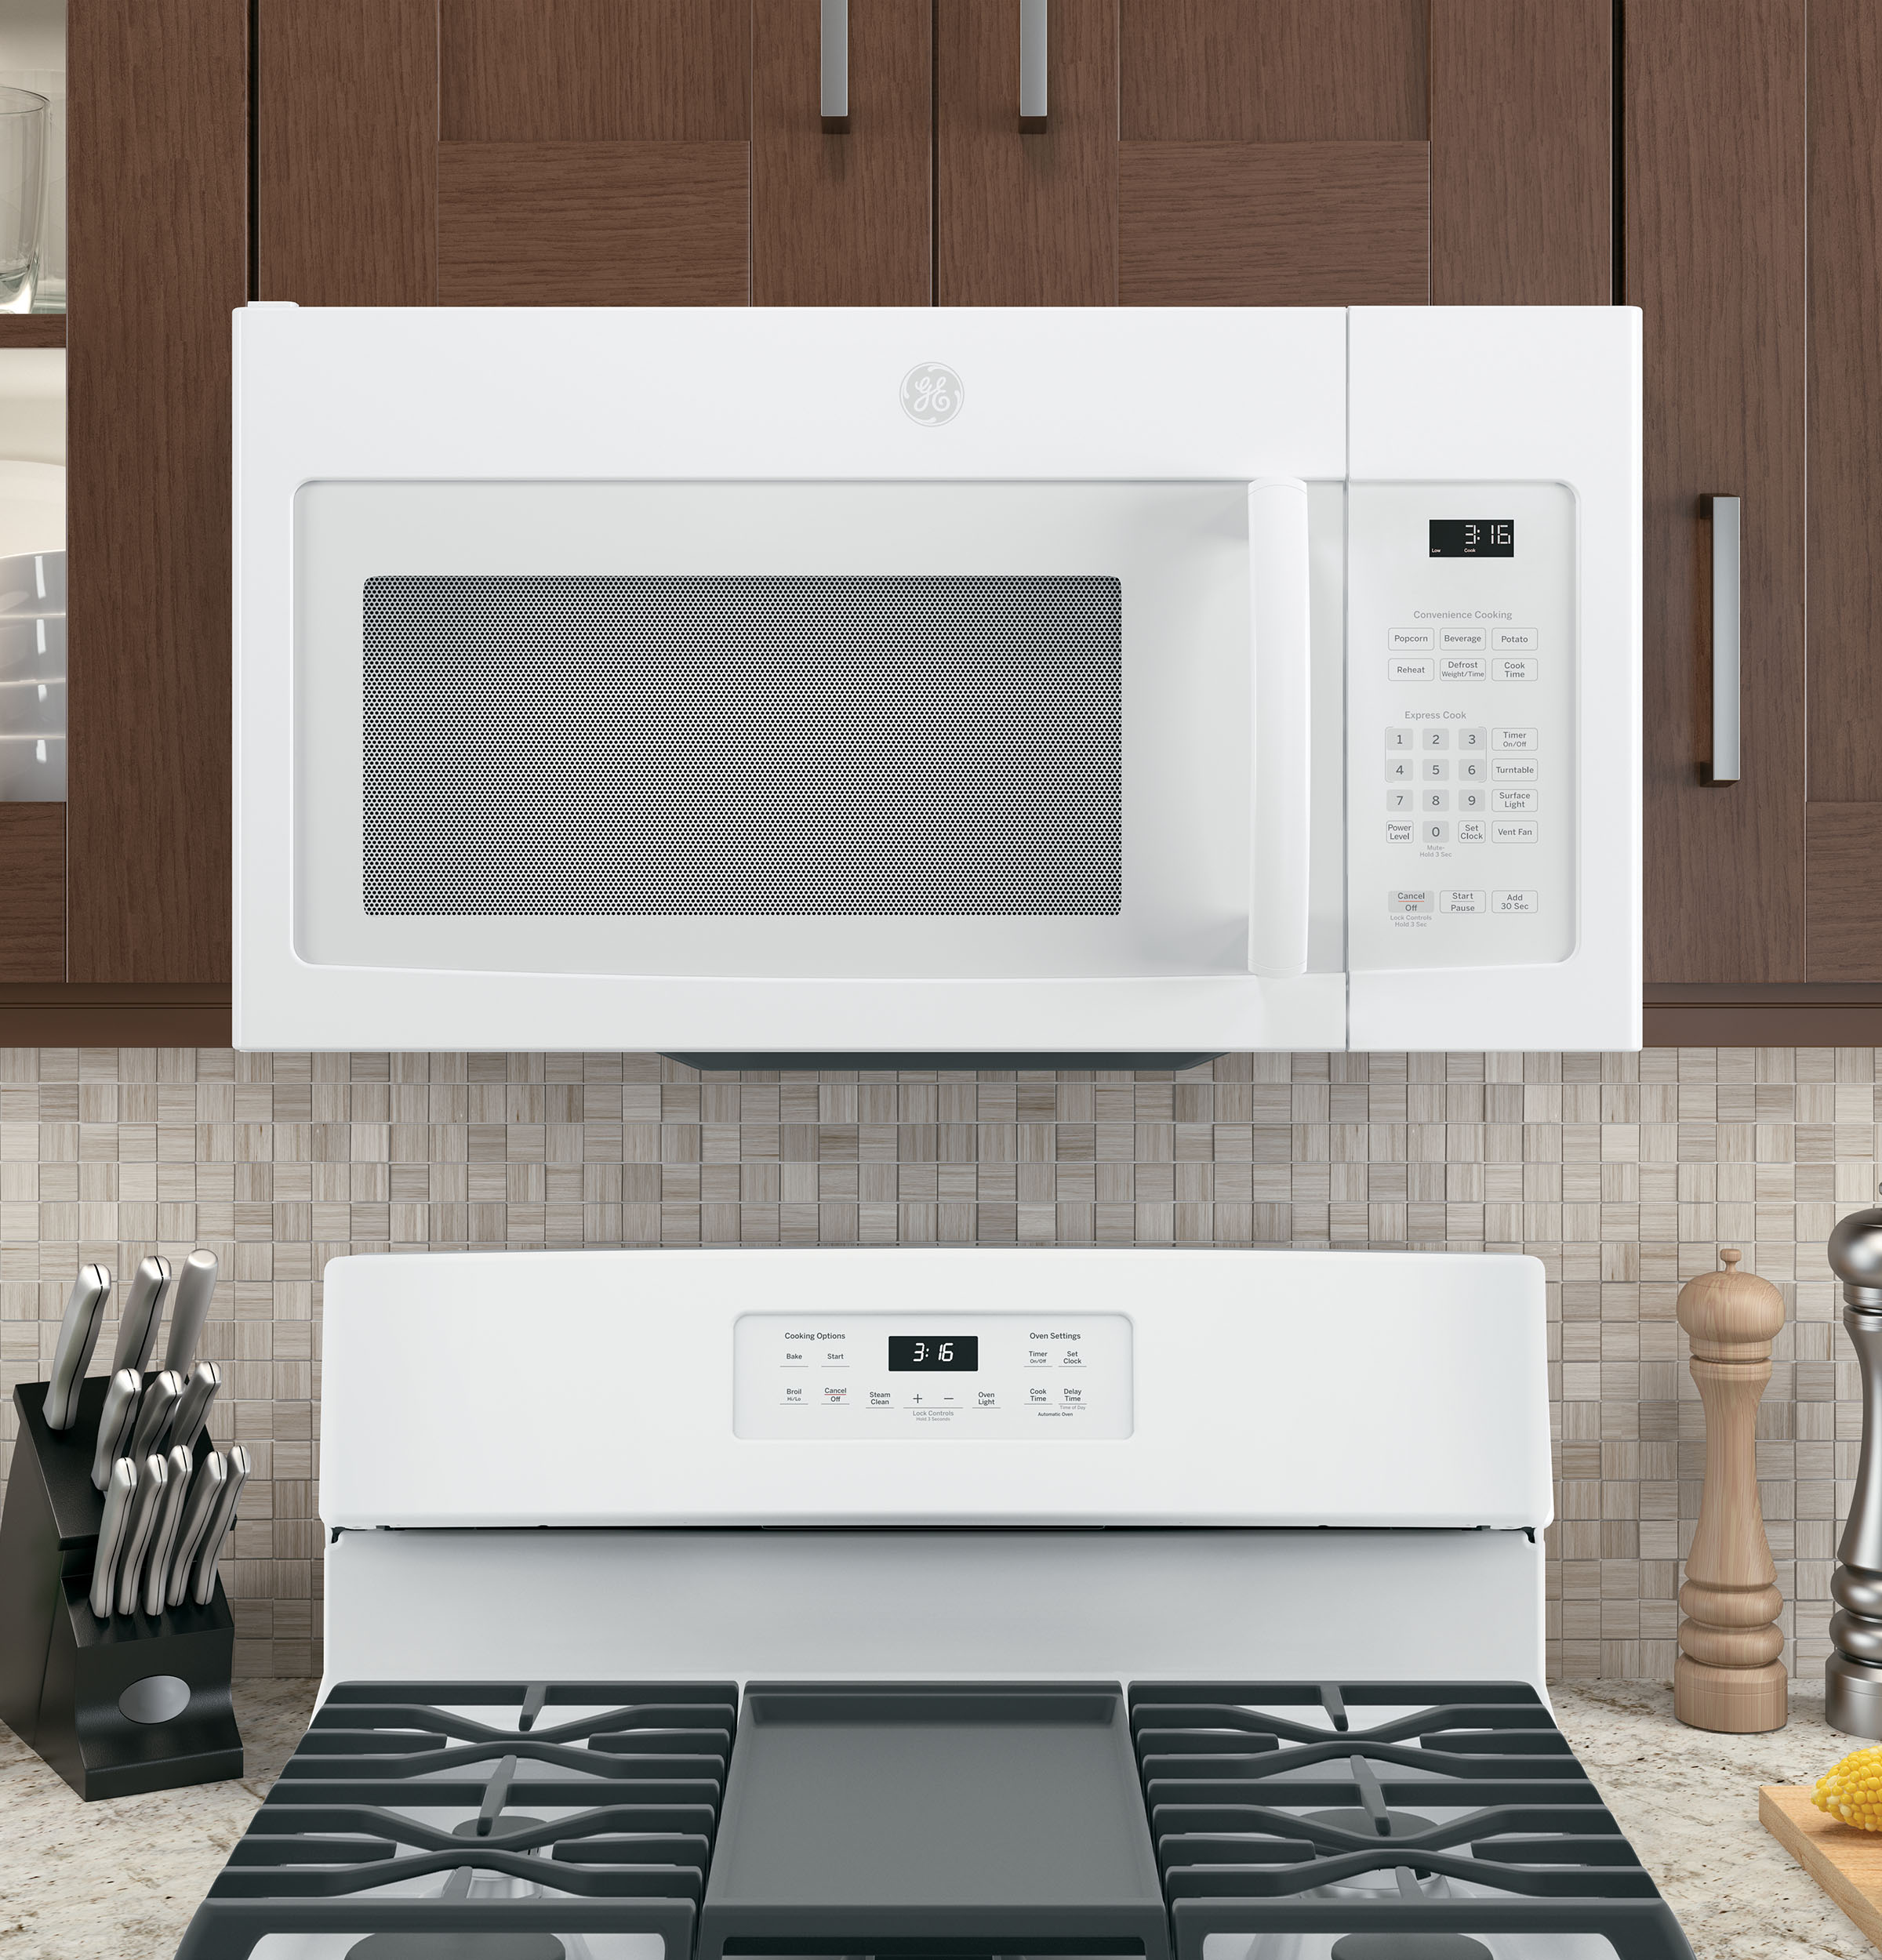 Installation of ge microwaves over the range - Product Image Product Image Product Image Product Image Product Image